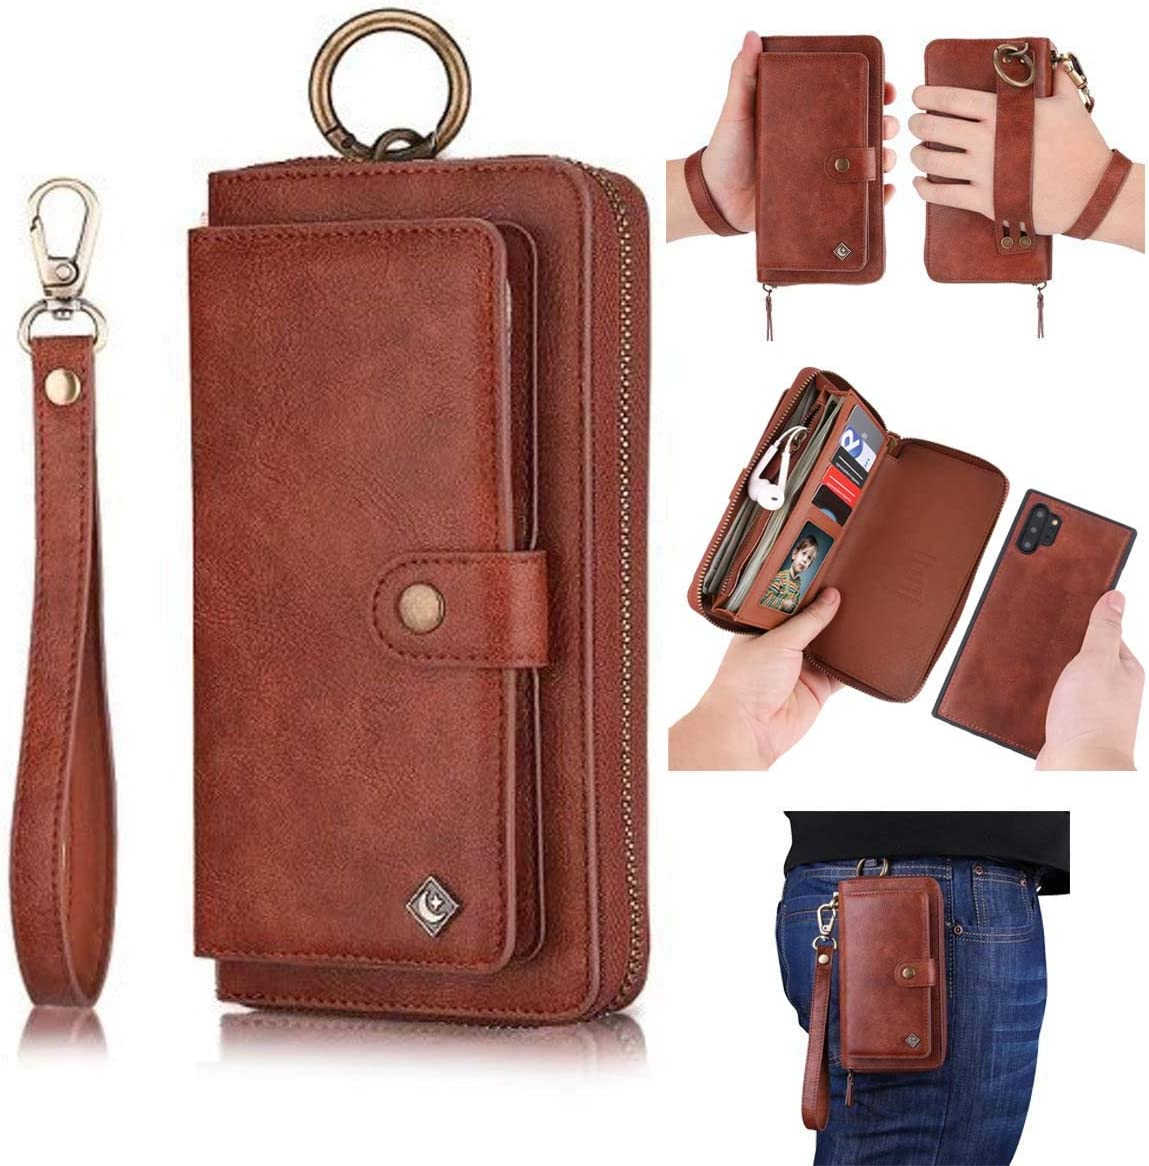 AIFENGCASE for Samsung Galaxy Note 10 Phone Case,Wallet Case for Women Men Girls,Wristlets Clutch Zipper Leather Pouch Wallet Flip Case Card Holder Magnetic Detachable Back Cover,Brown